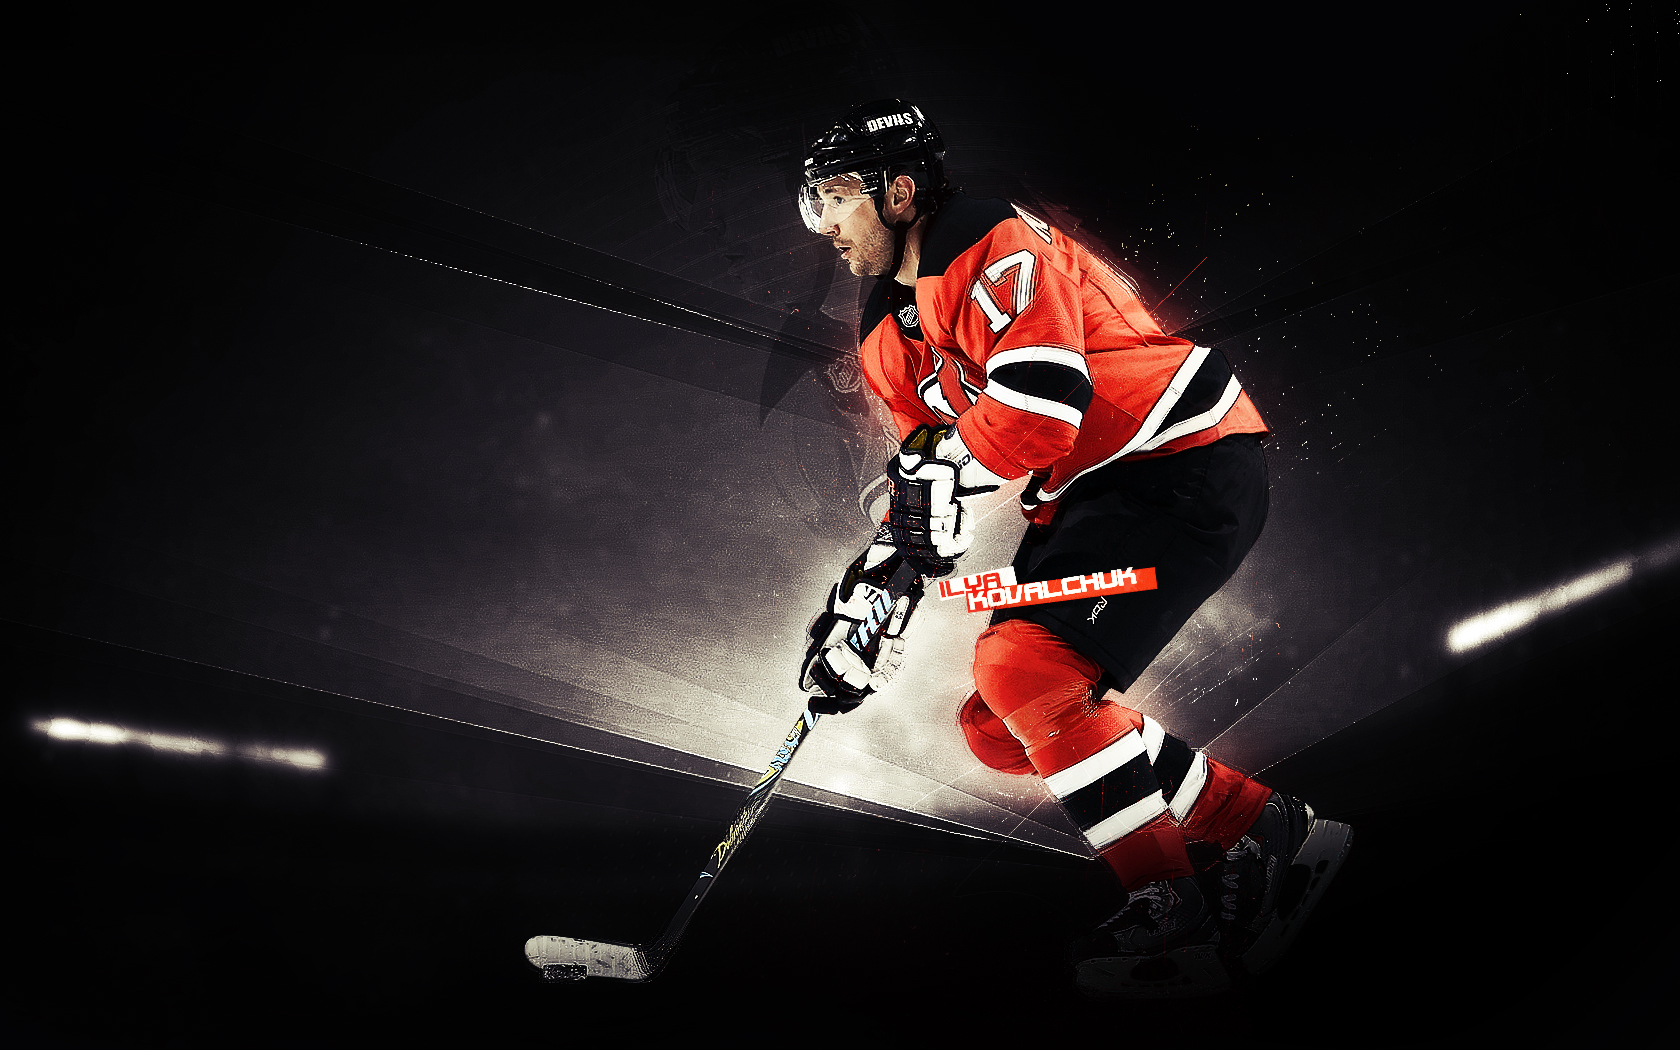 1680x1050 - New Jersey Devils Wallpapers 19